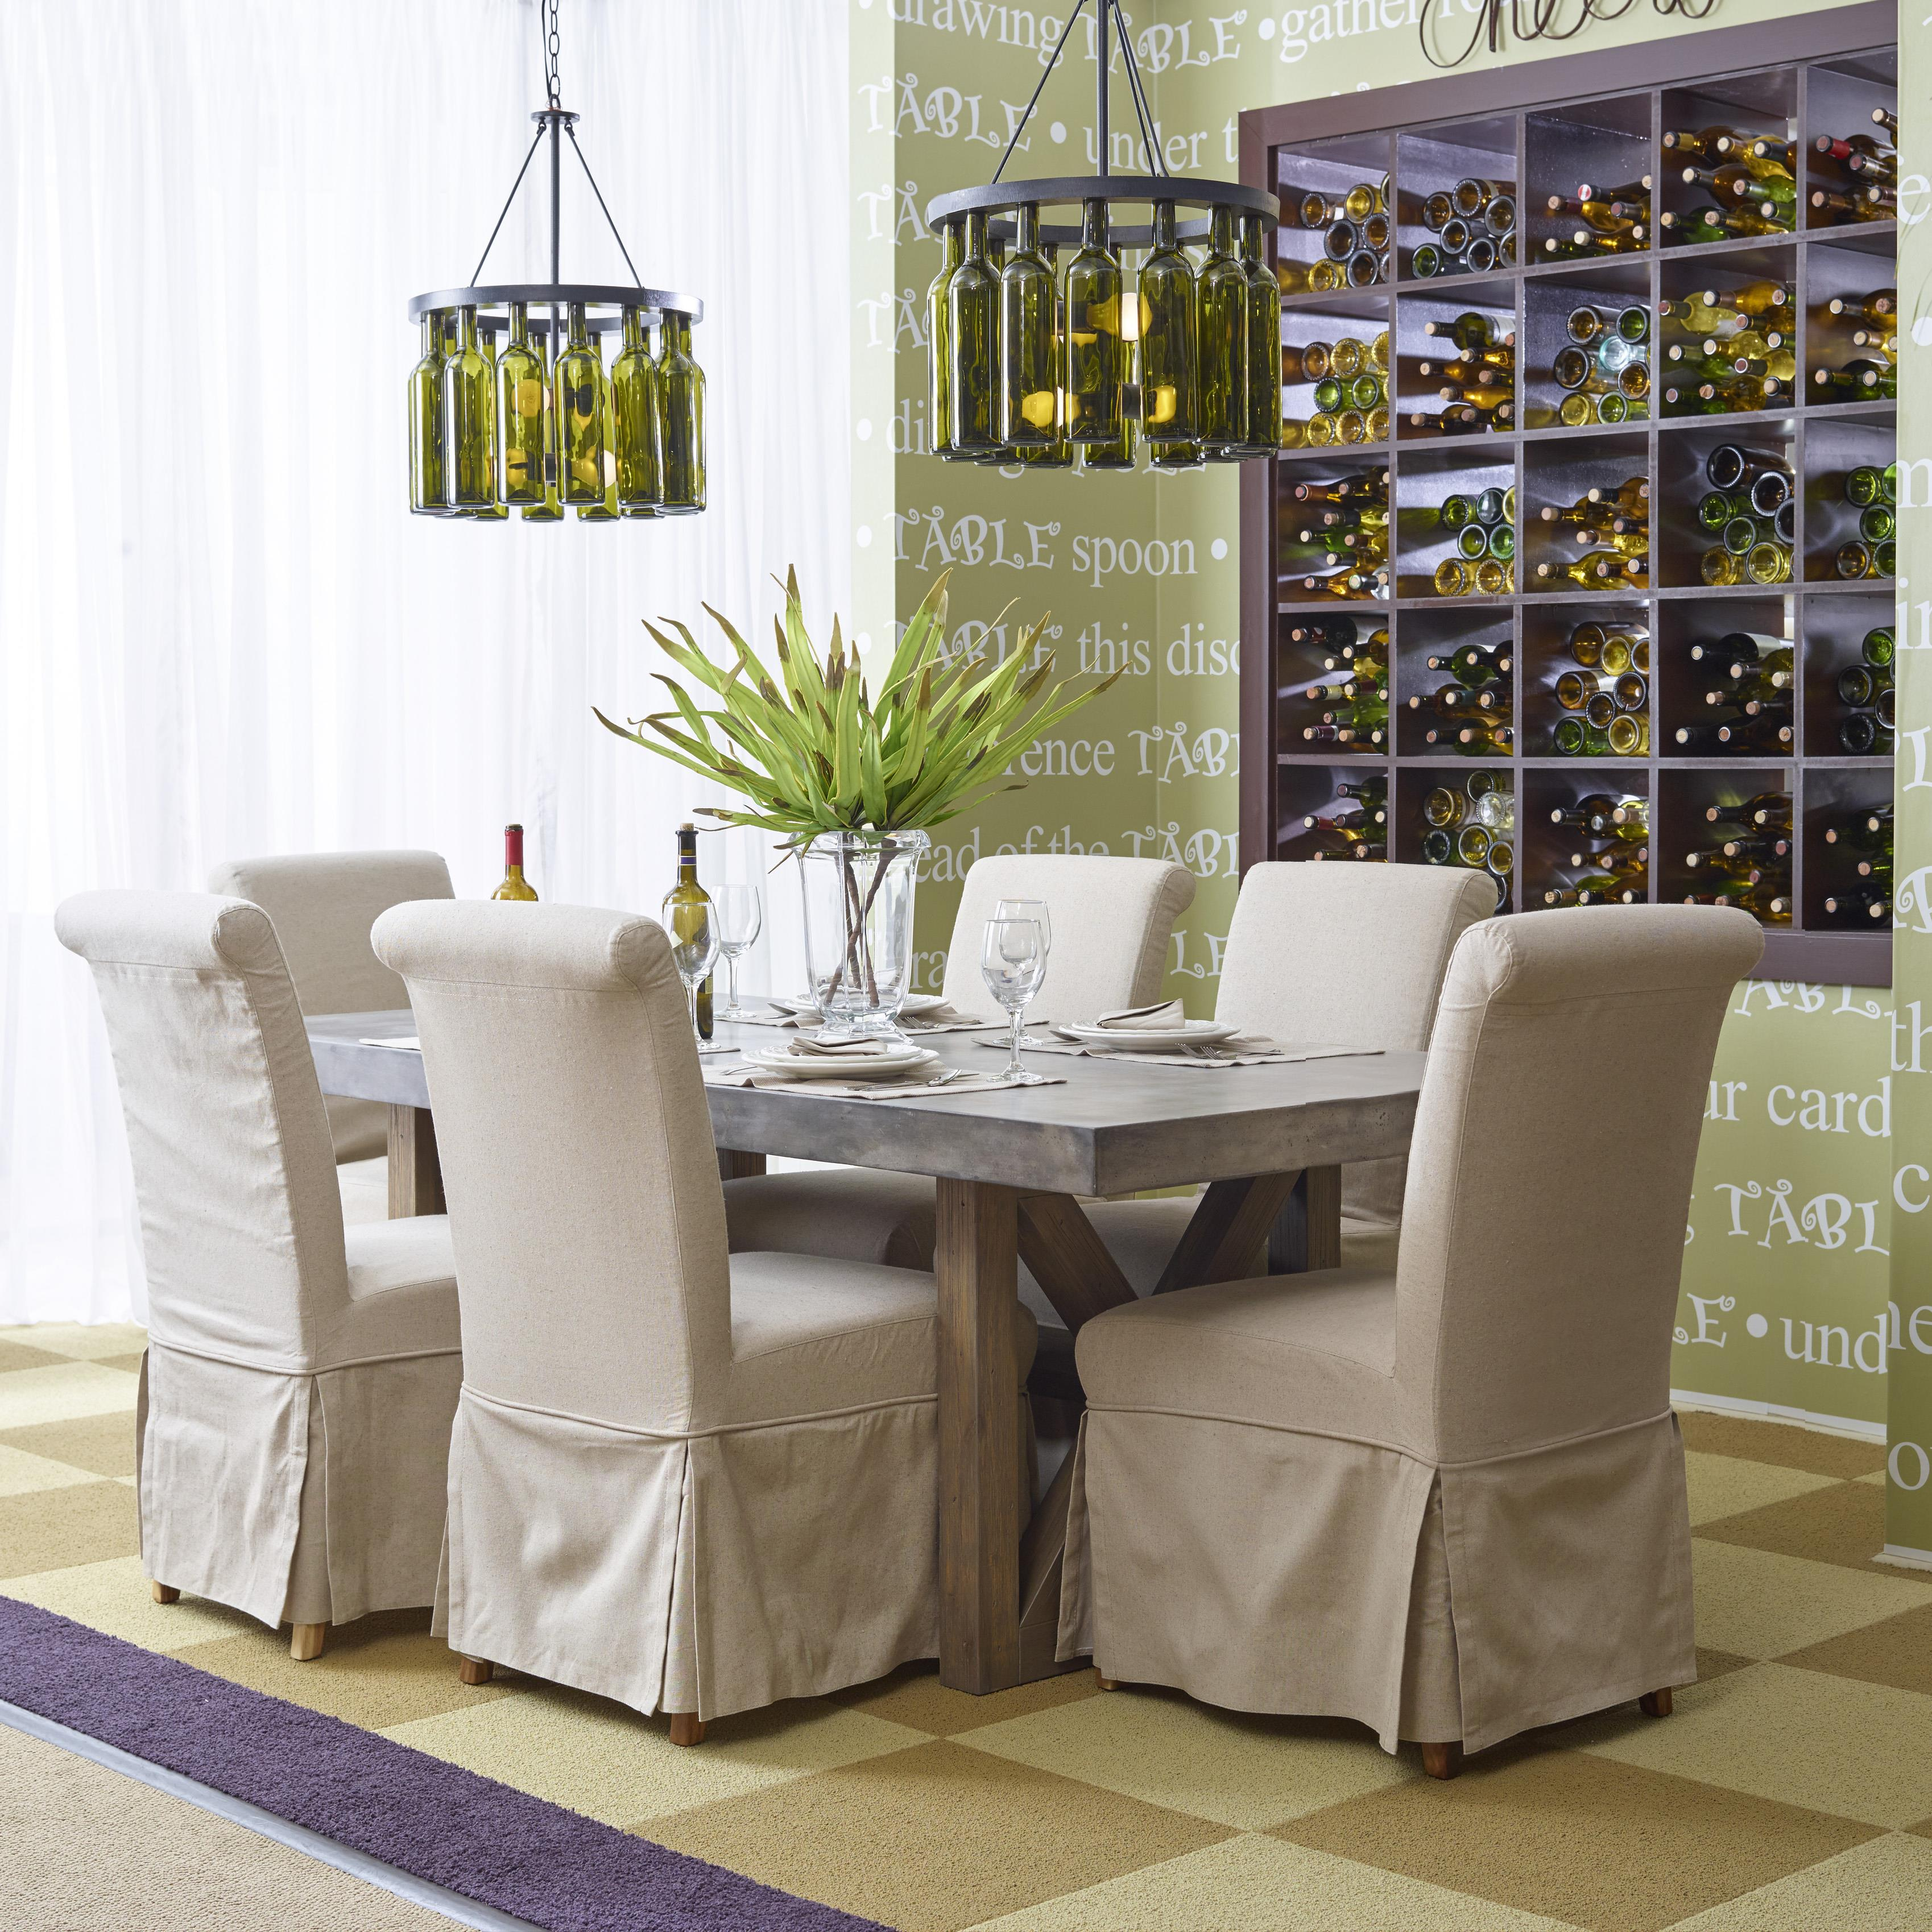 concrete kitchen table Boulder Ridge Concrete Dining Table Rectangle Belfort Furniture Dining Room Table